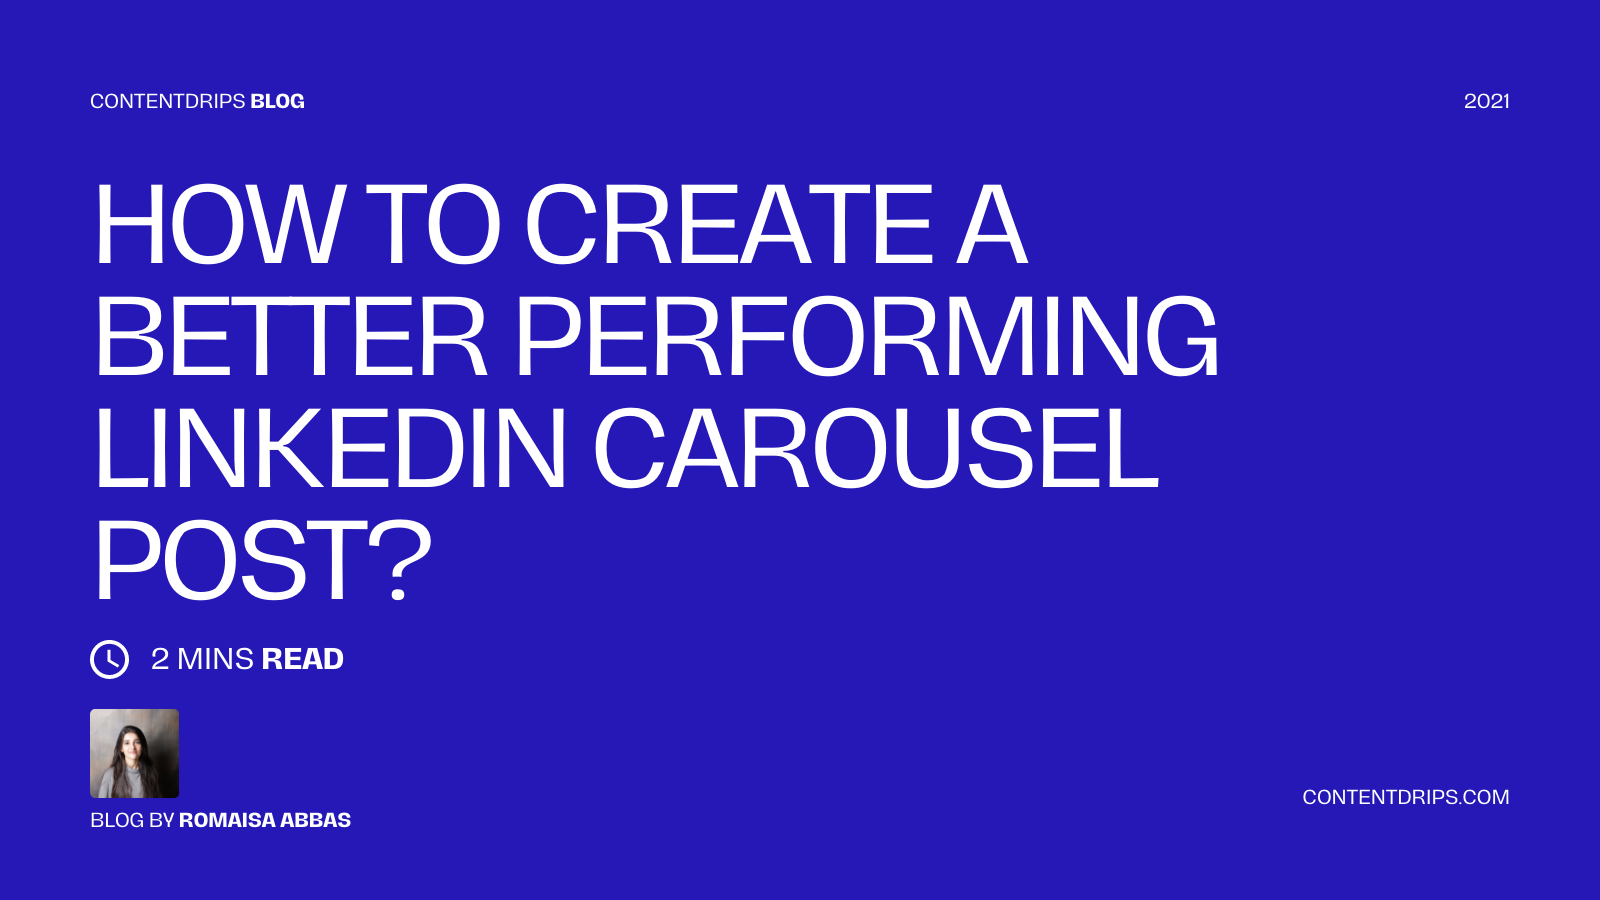 How to Create a Better Performing LinkedIn Carousel Post?